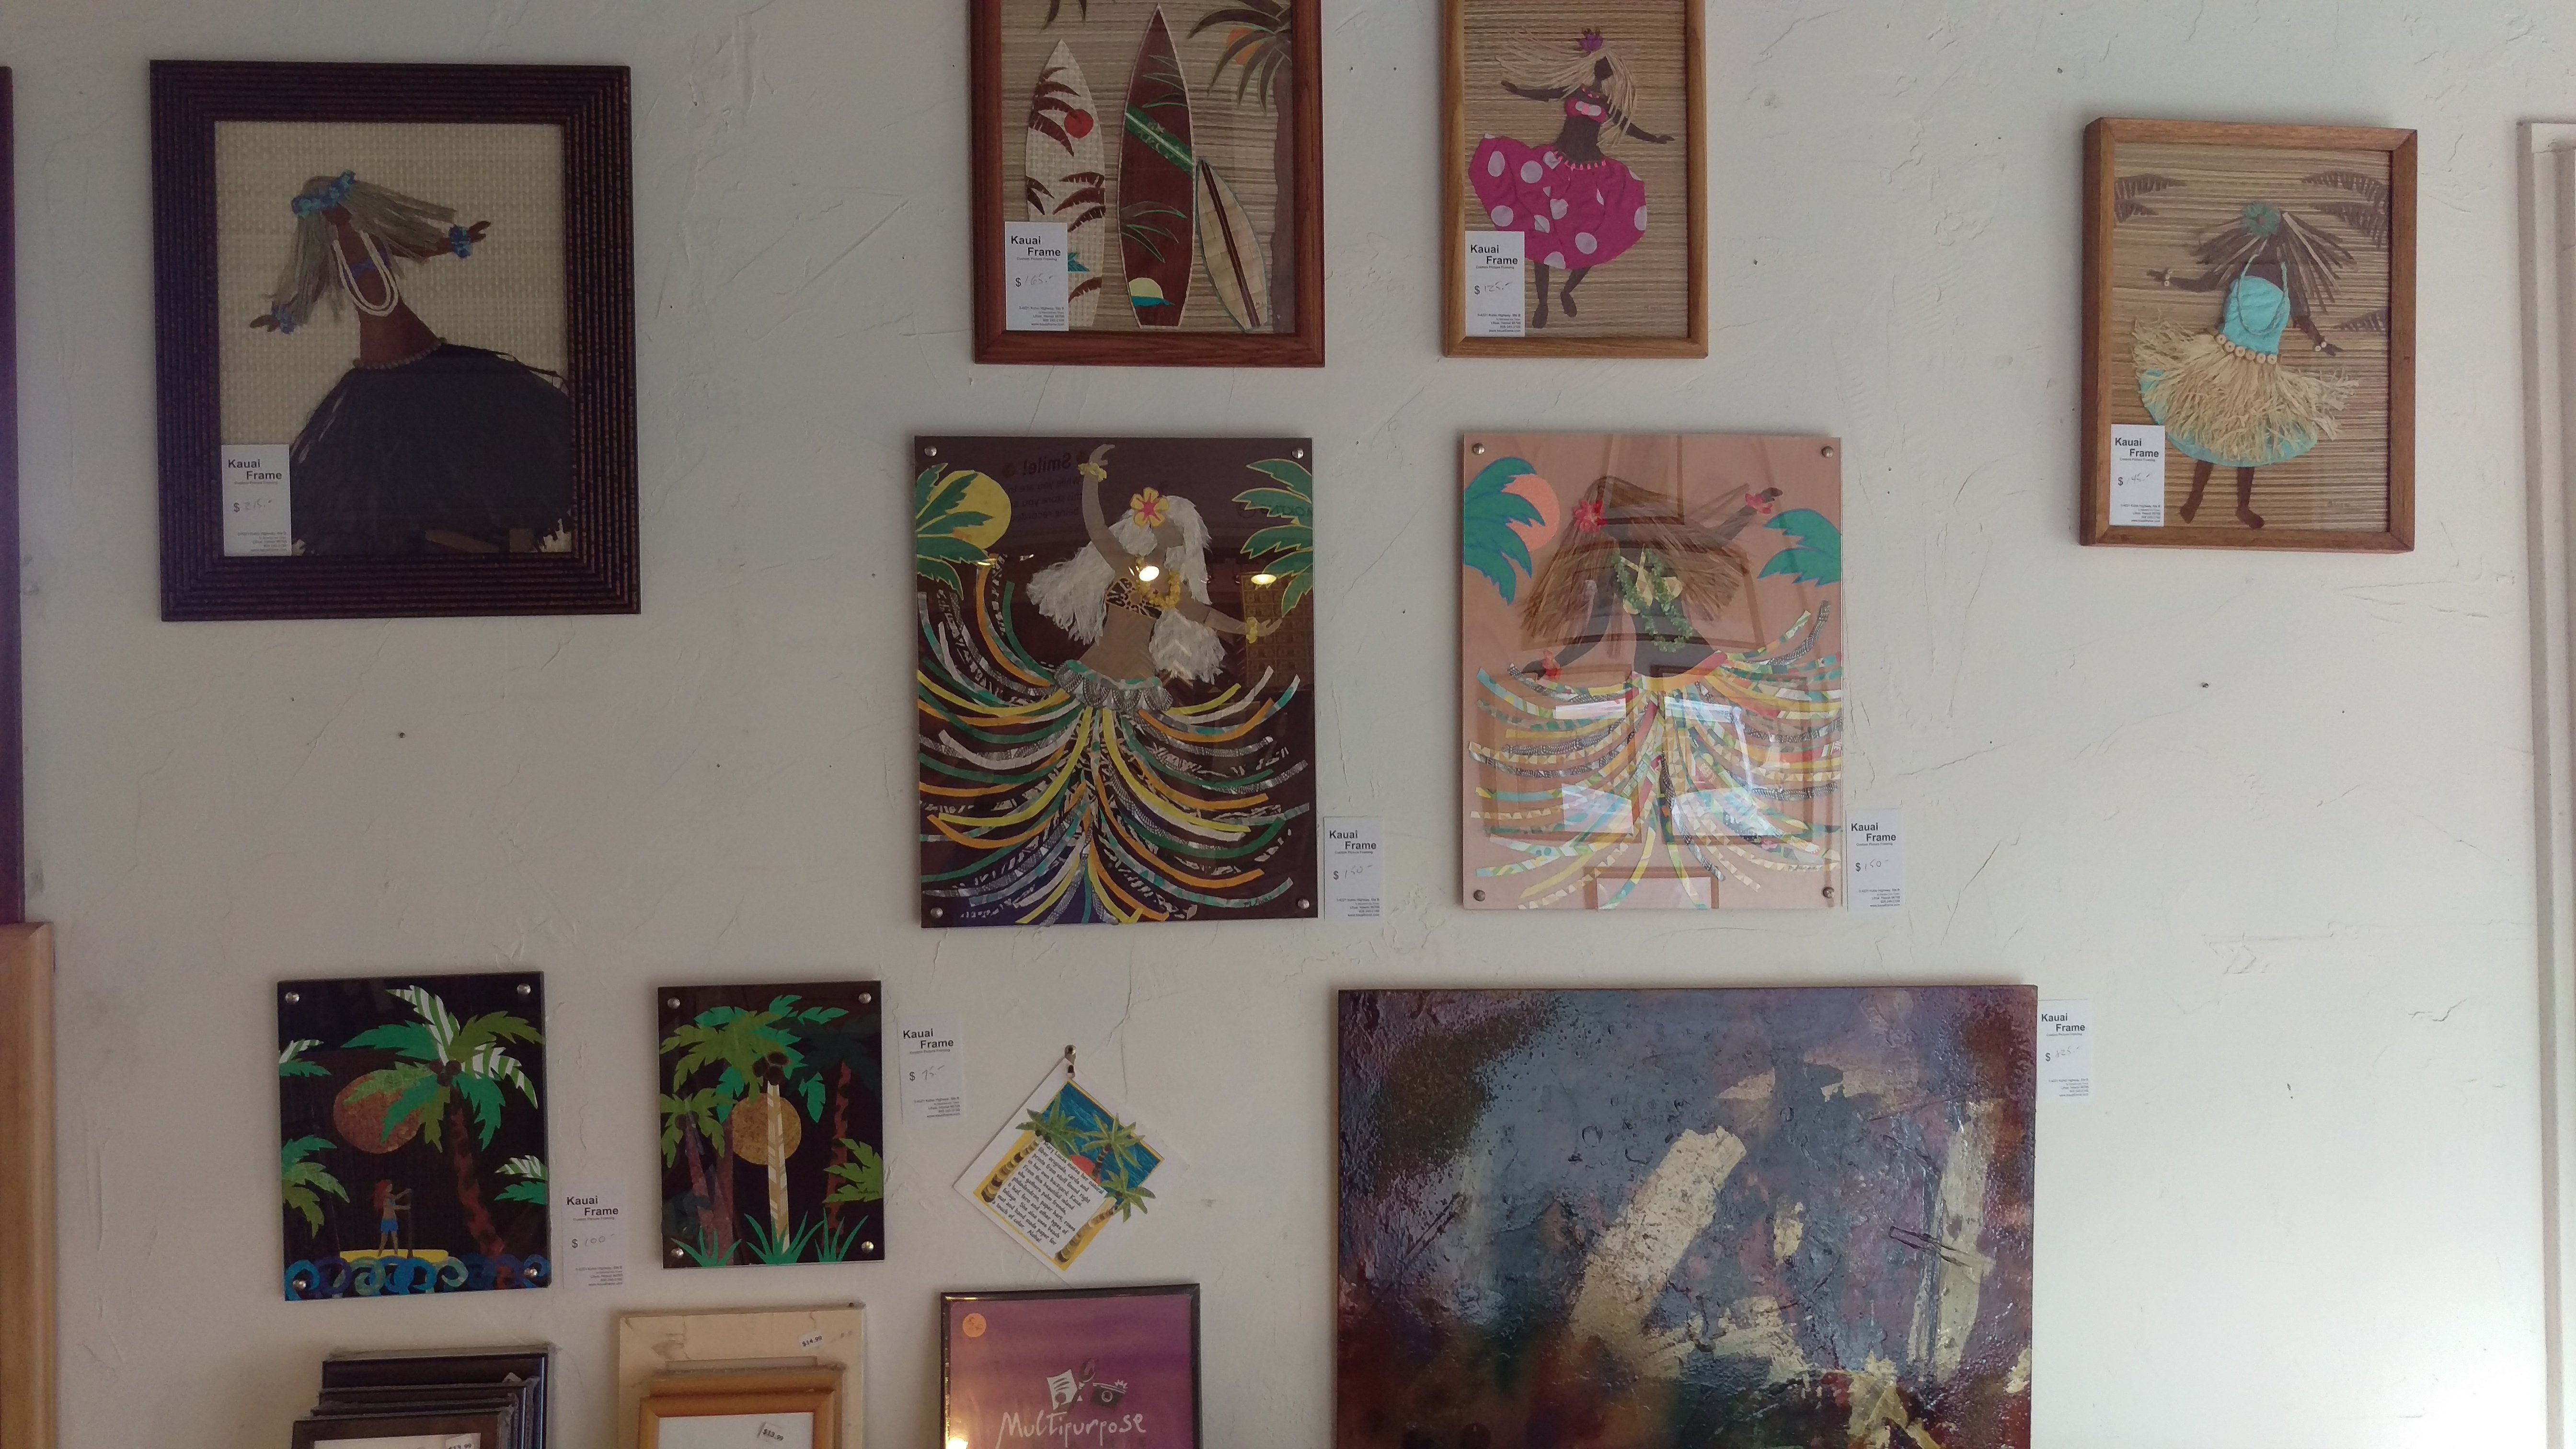 Creative frames in Lihue